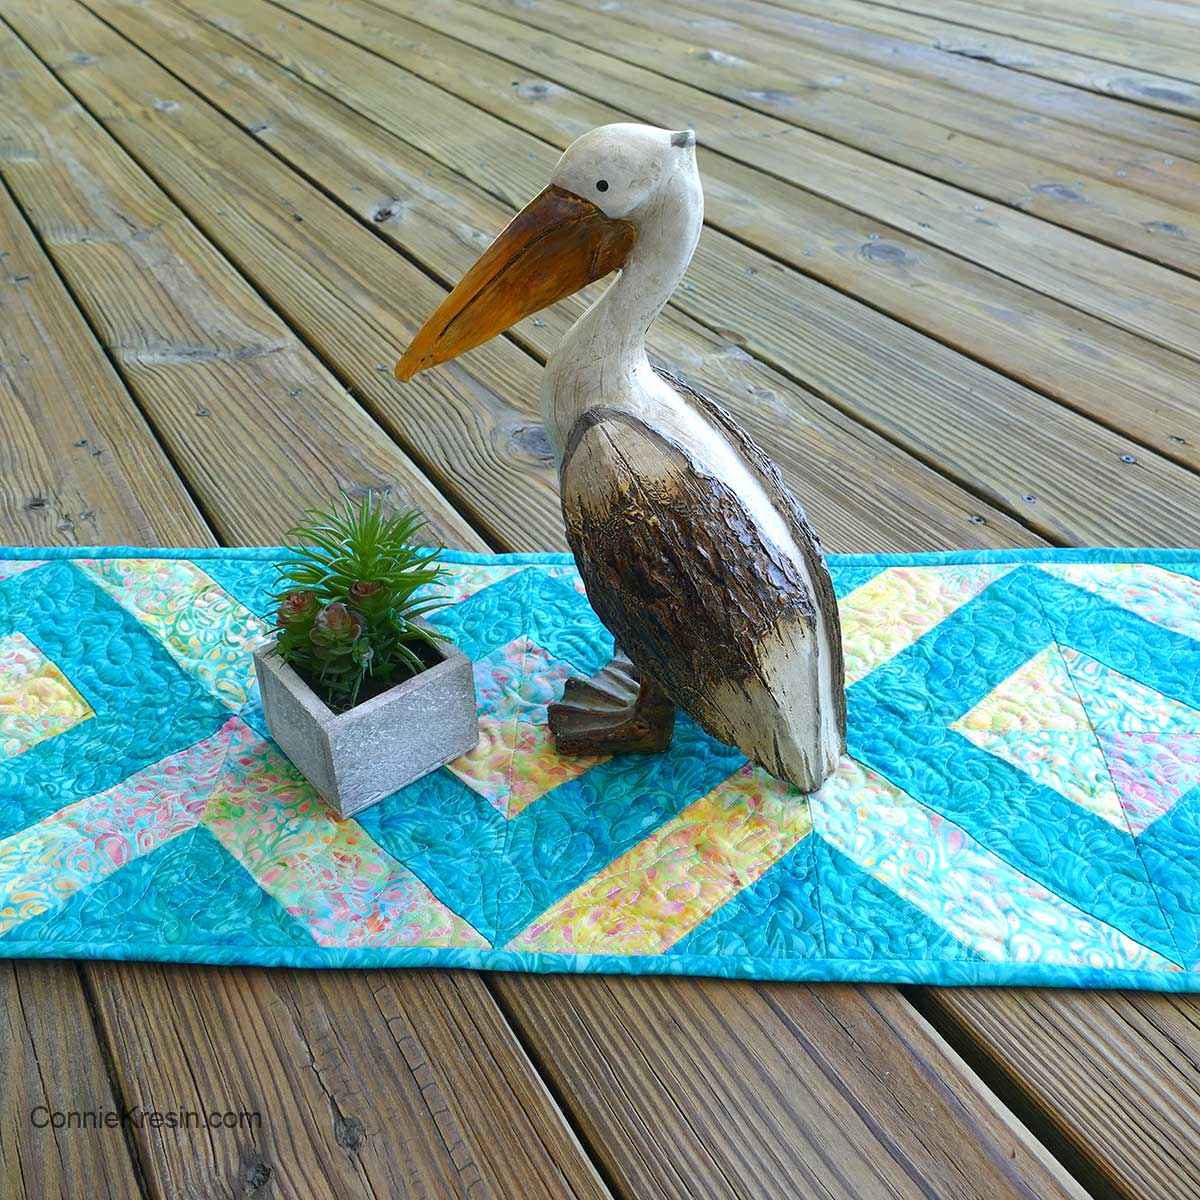 45-degree strip tube table runner on deck with pelican